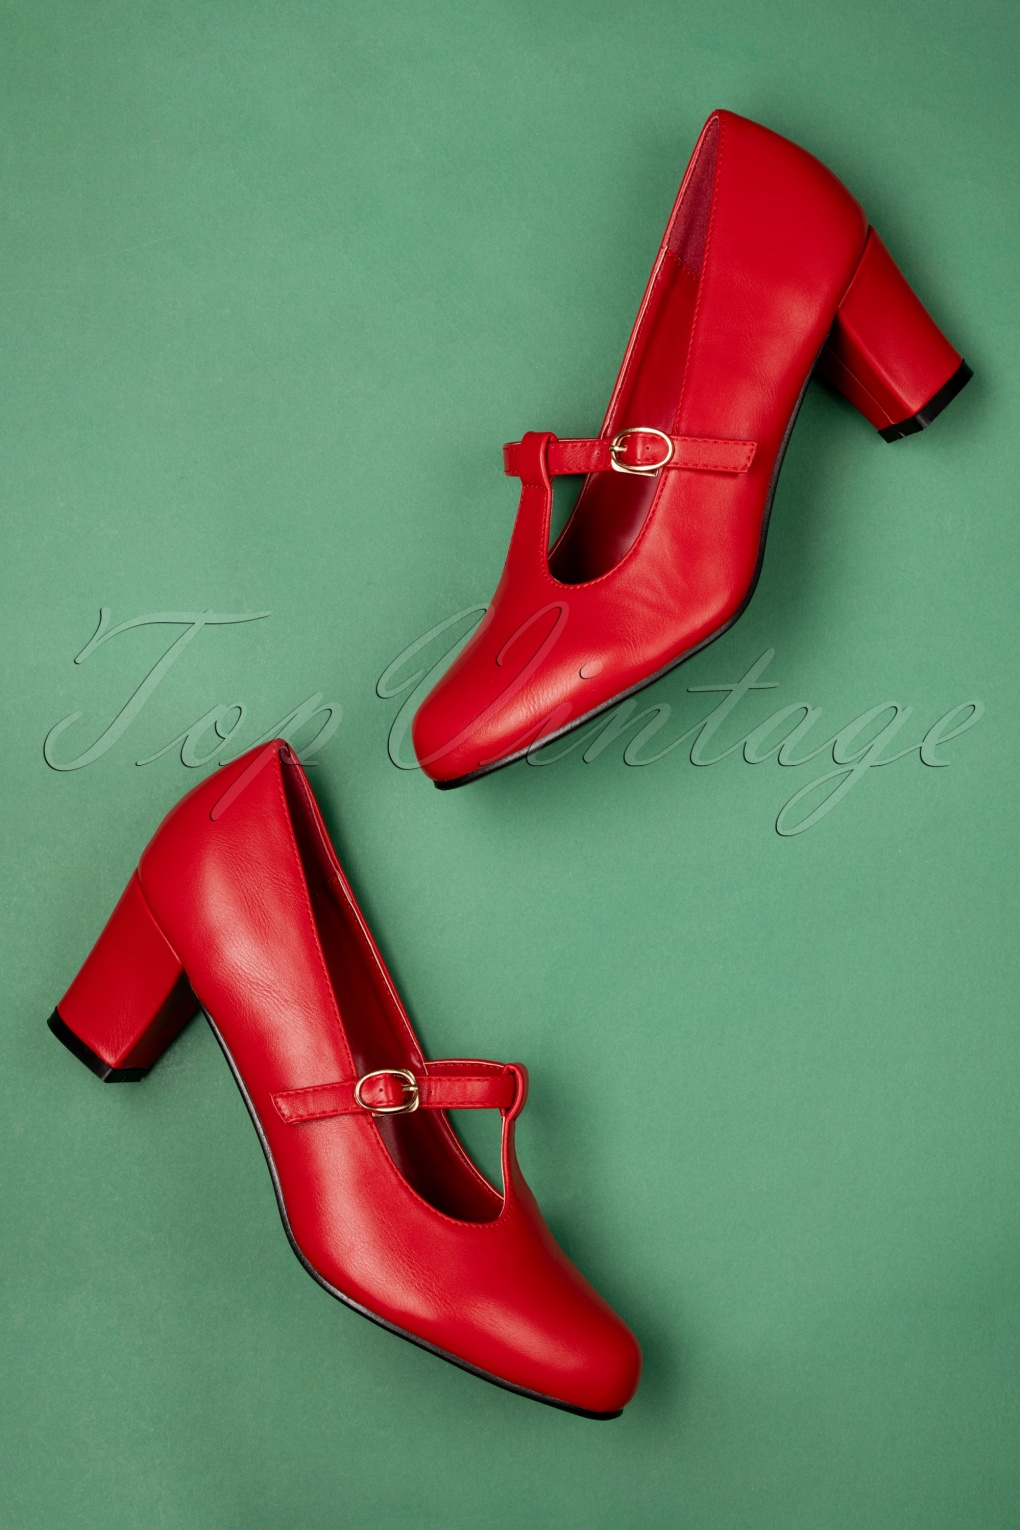 Vintage Style Shoes, Vintage Inspired Shoes 60s Giselle T-Strap Pumps in Red £38.30 AT vintagedancer.com